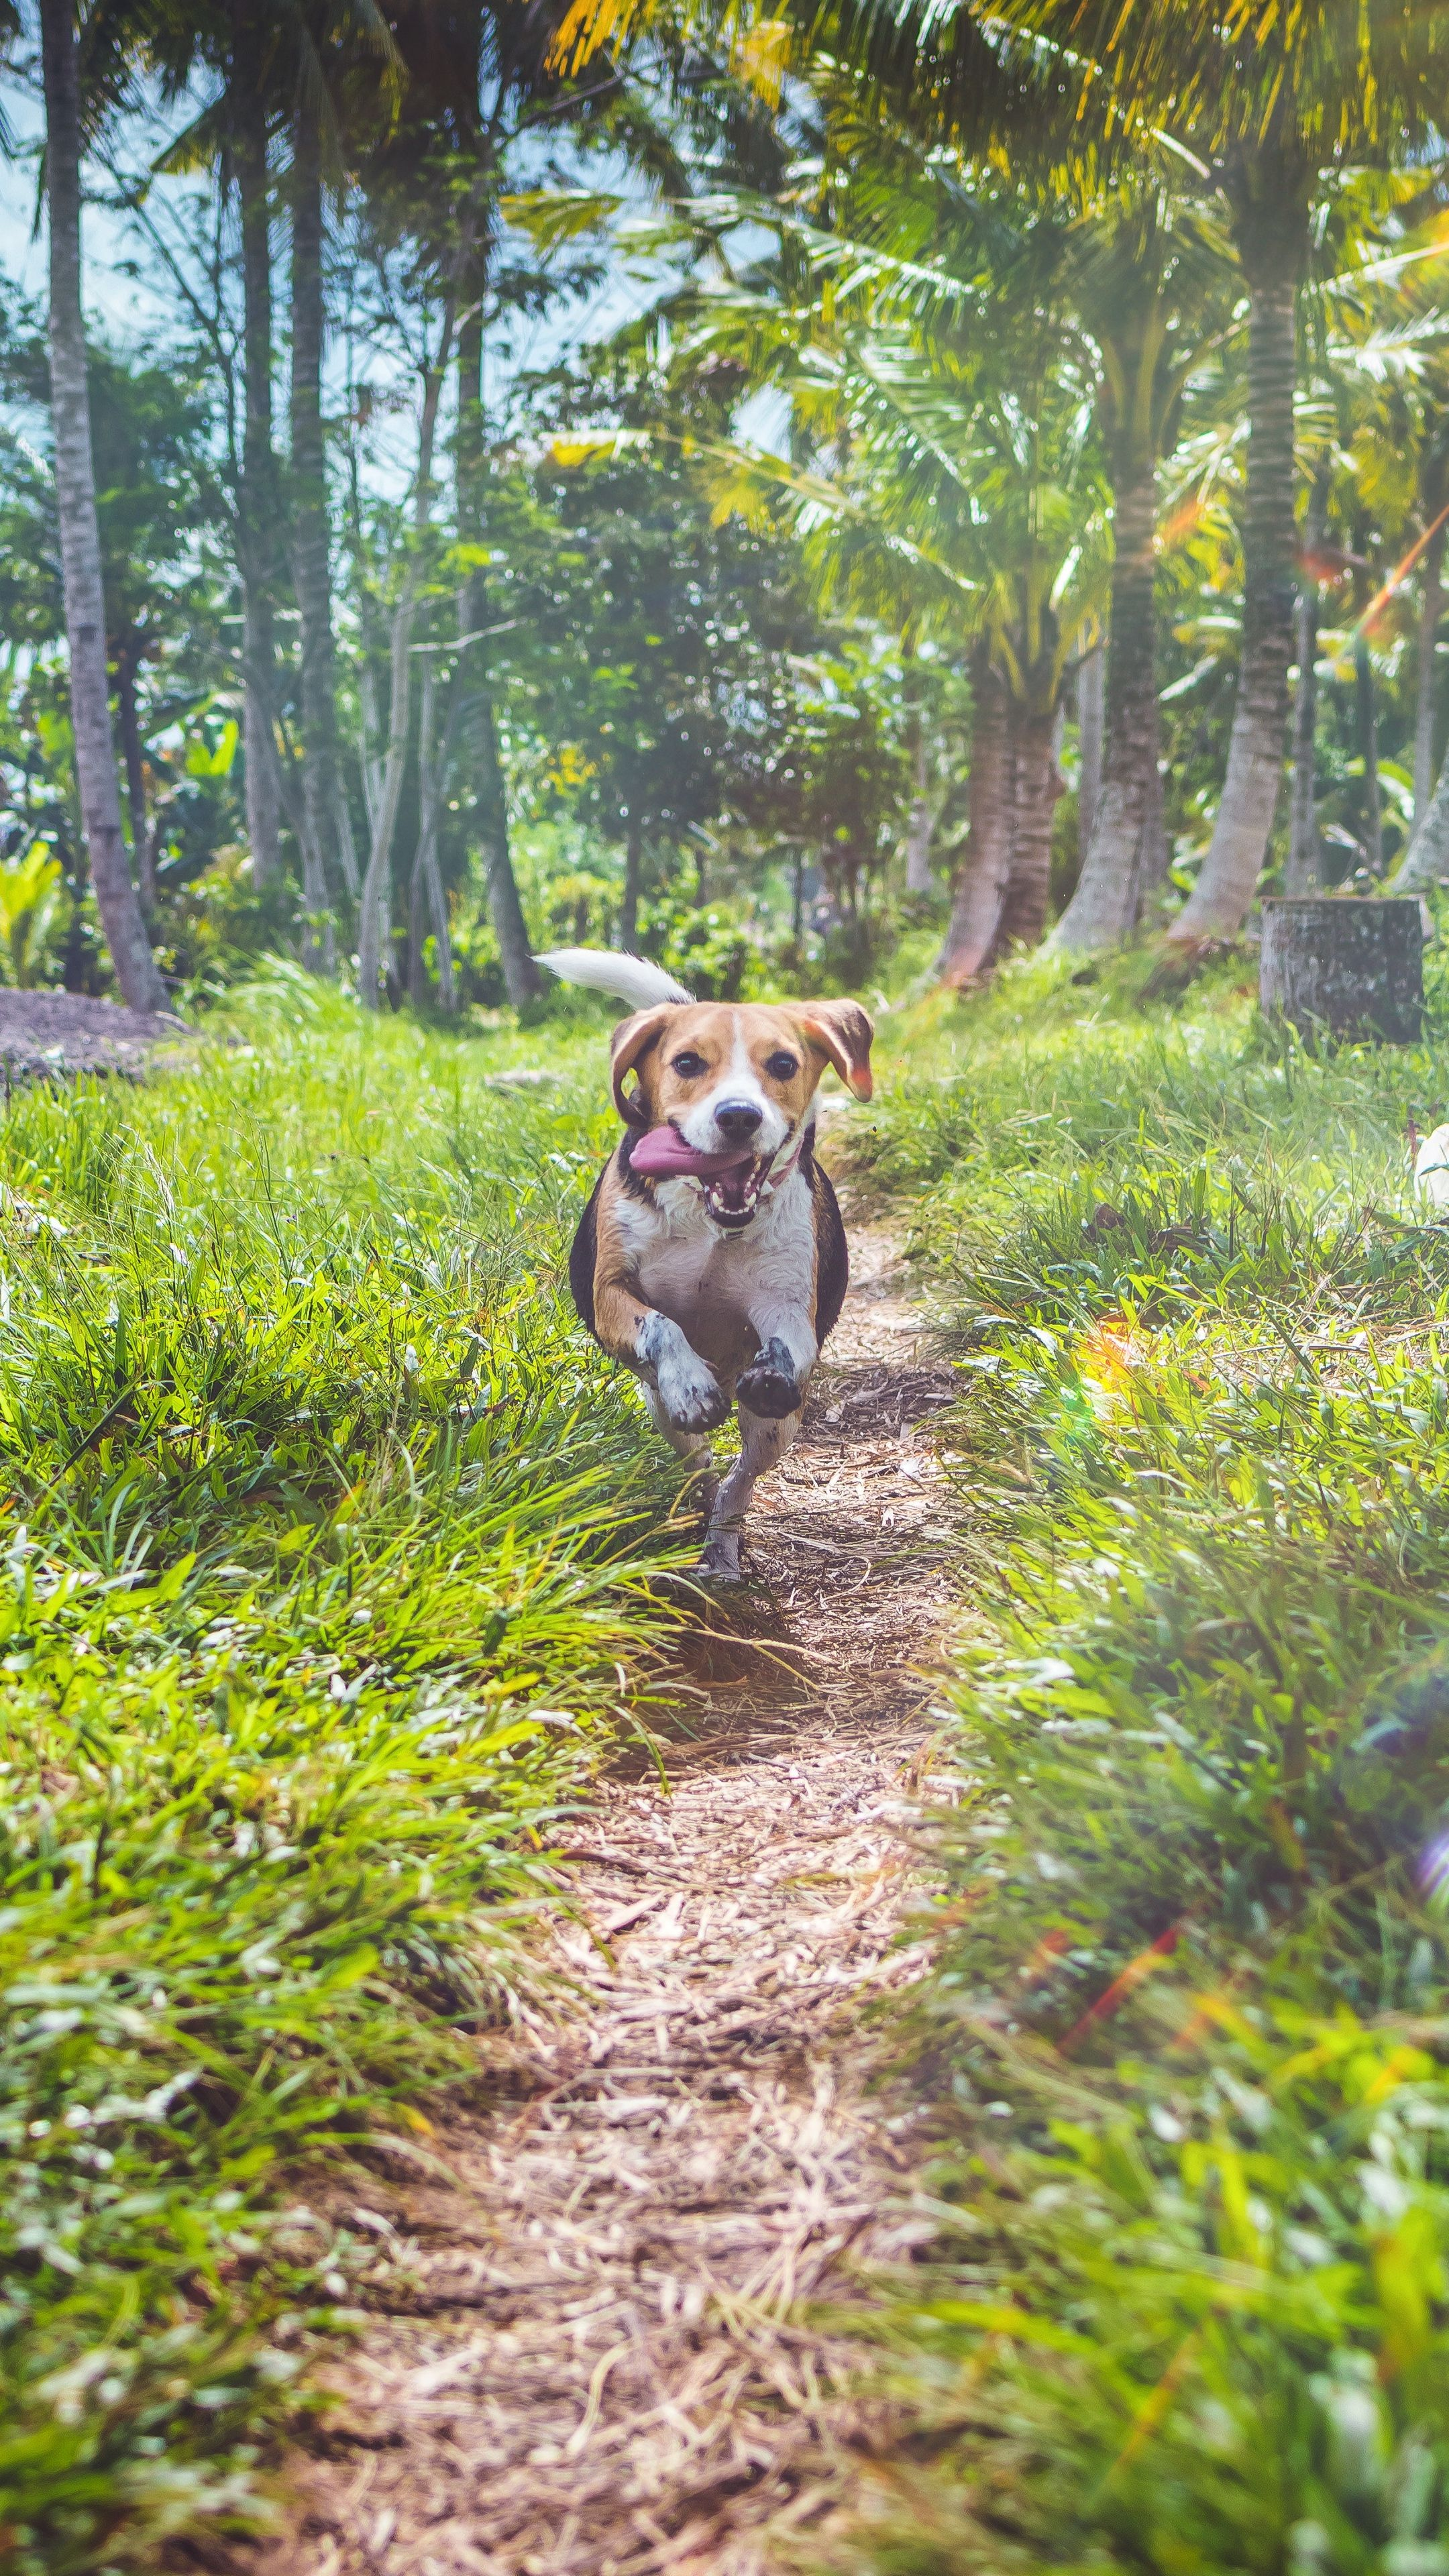 Animals Beagle Dog Running Wallpapers Hd 4k Background For